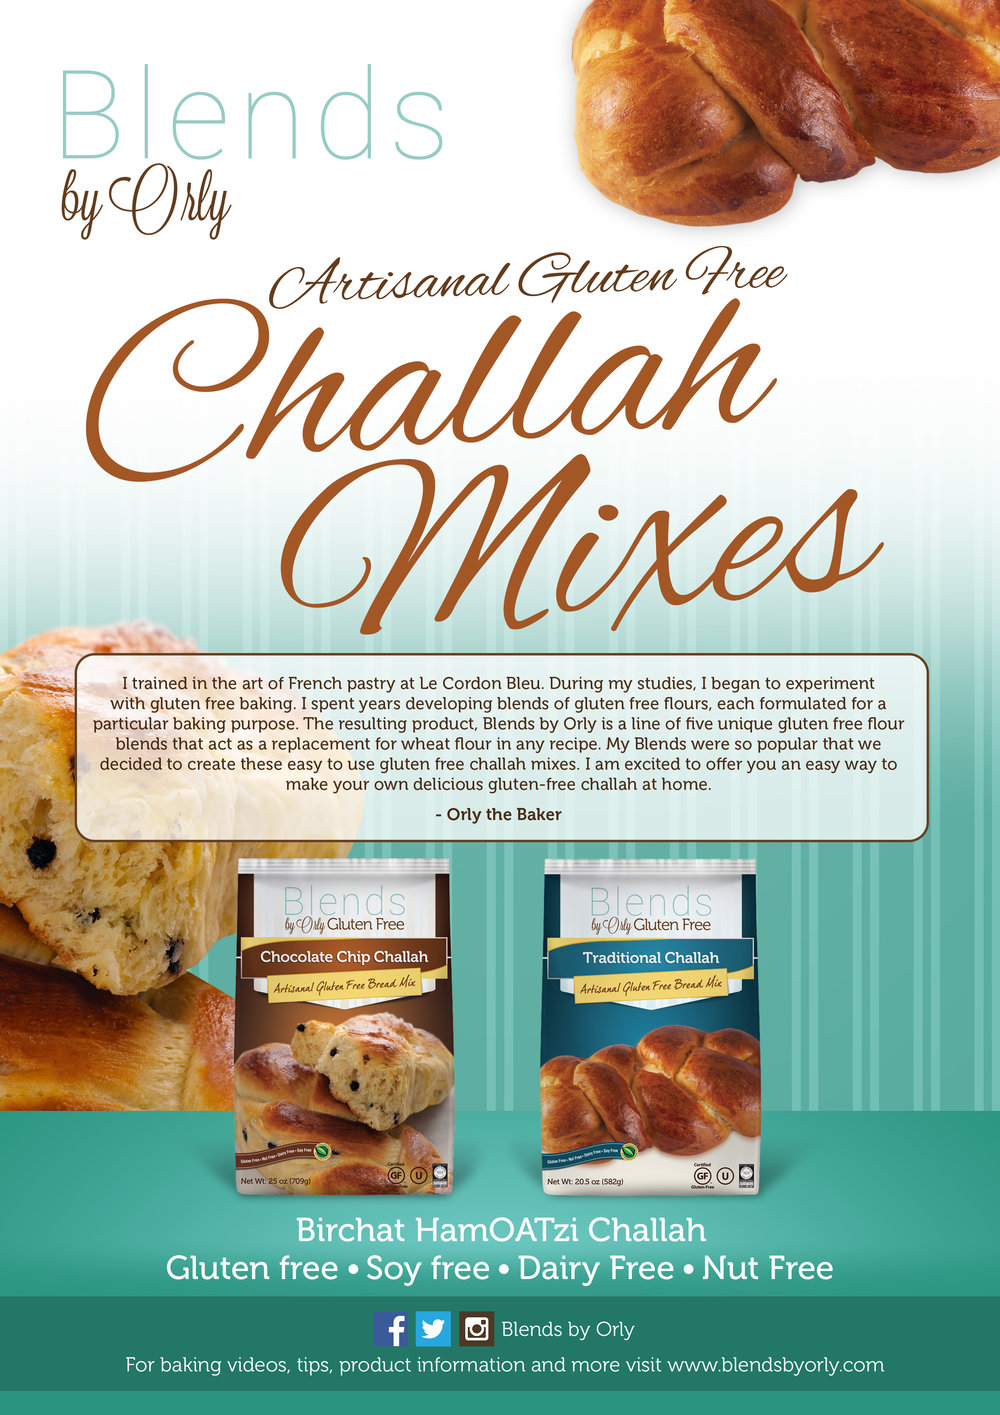 AD-Blends-by-Orly-Bread-Mixes-c.jpg